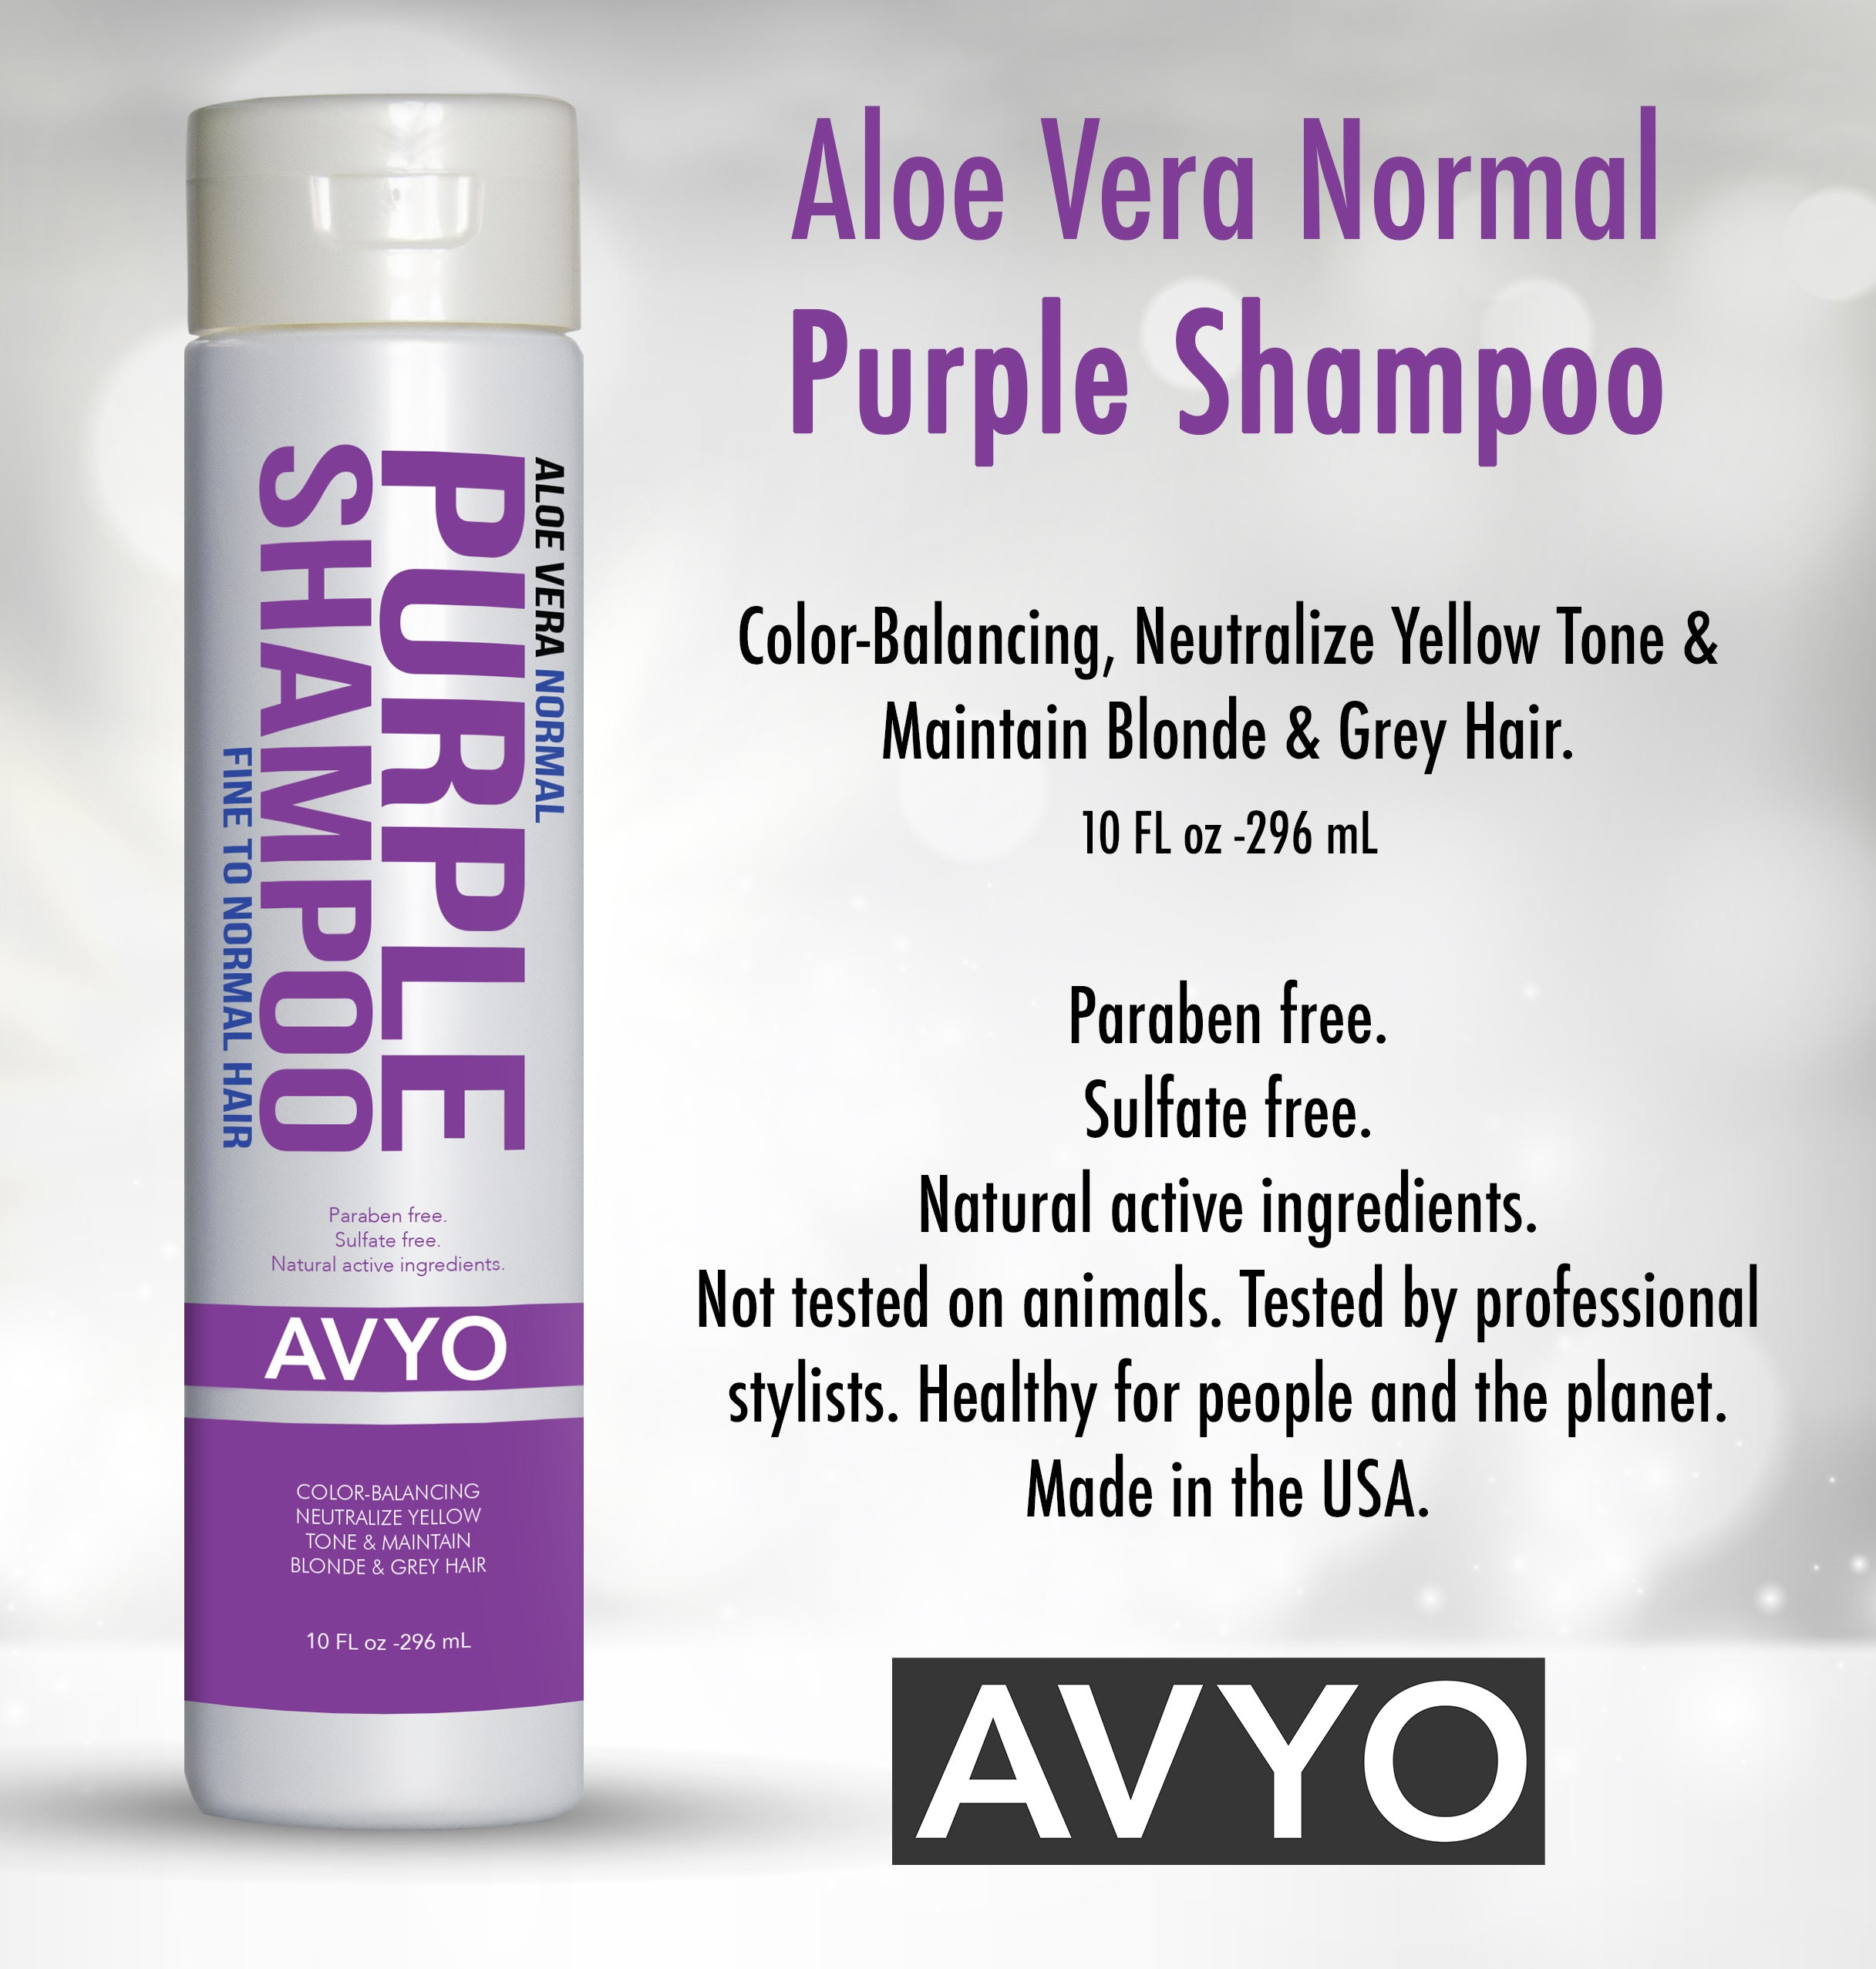 Aloe Vera Normal Purple Shampoo | AVYO | AVYO | SHSalons.com